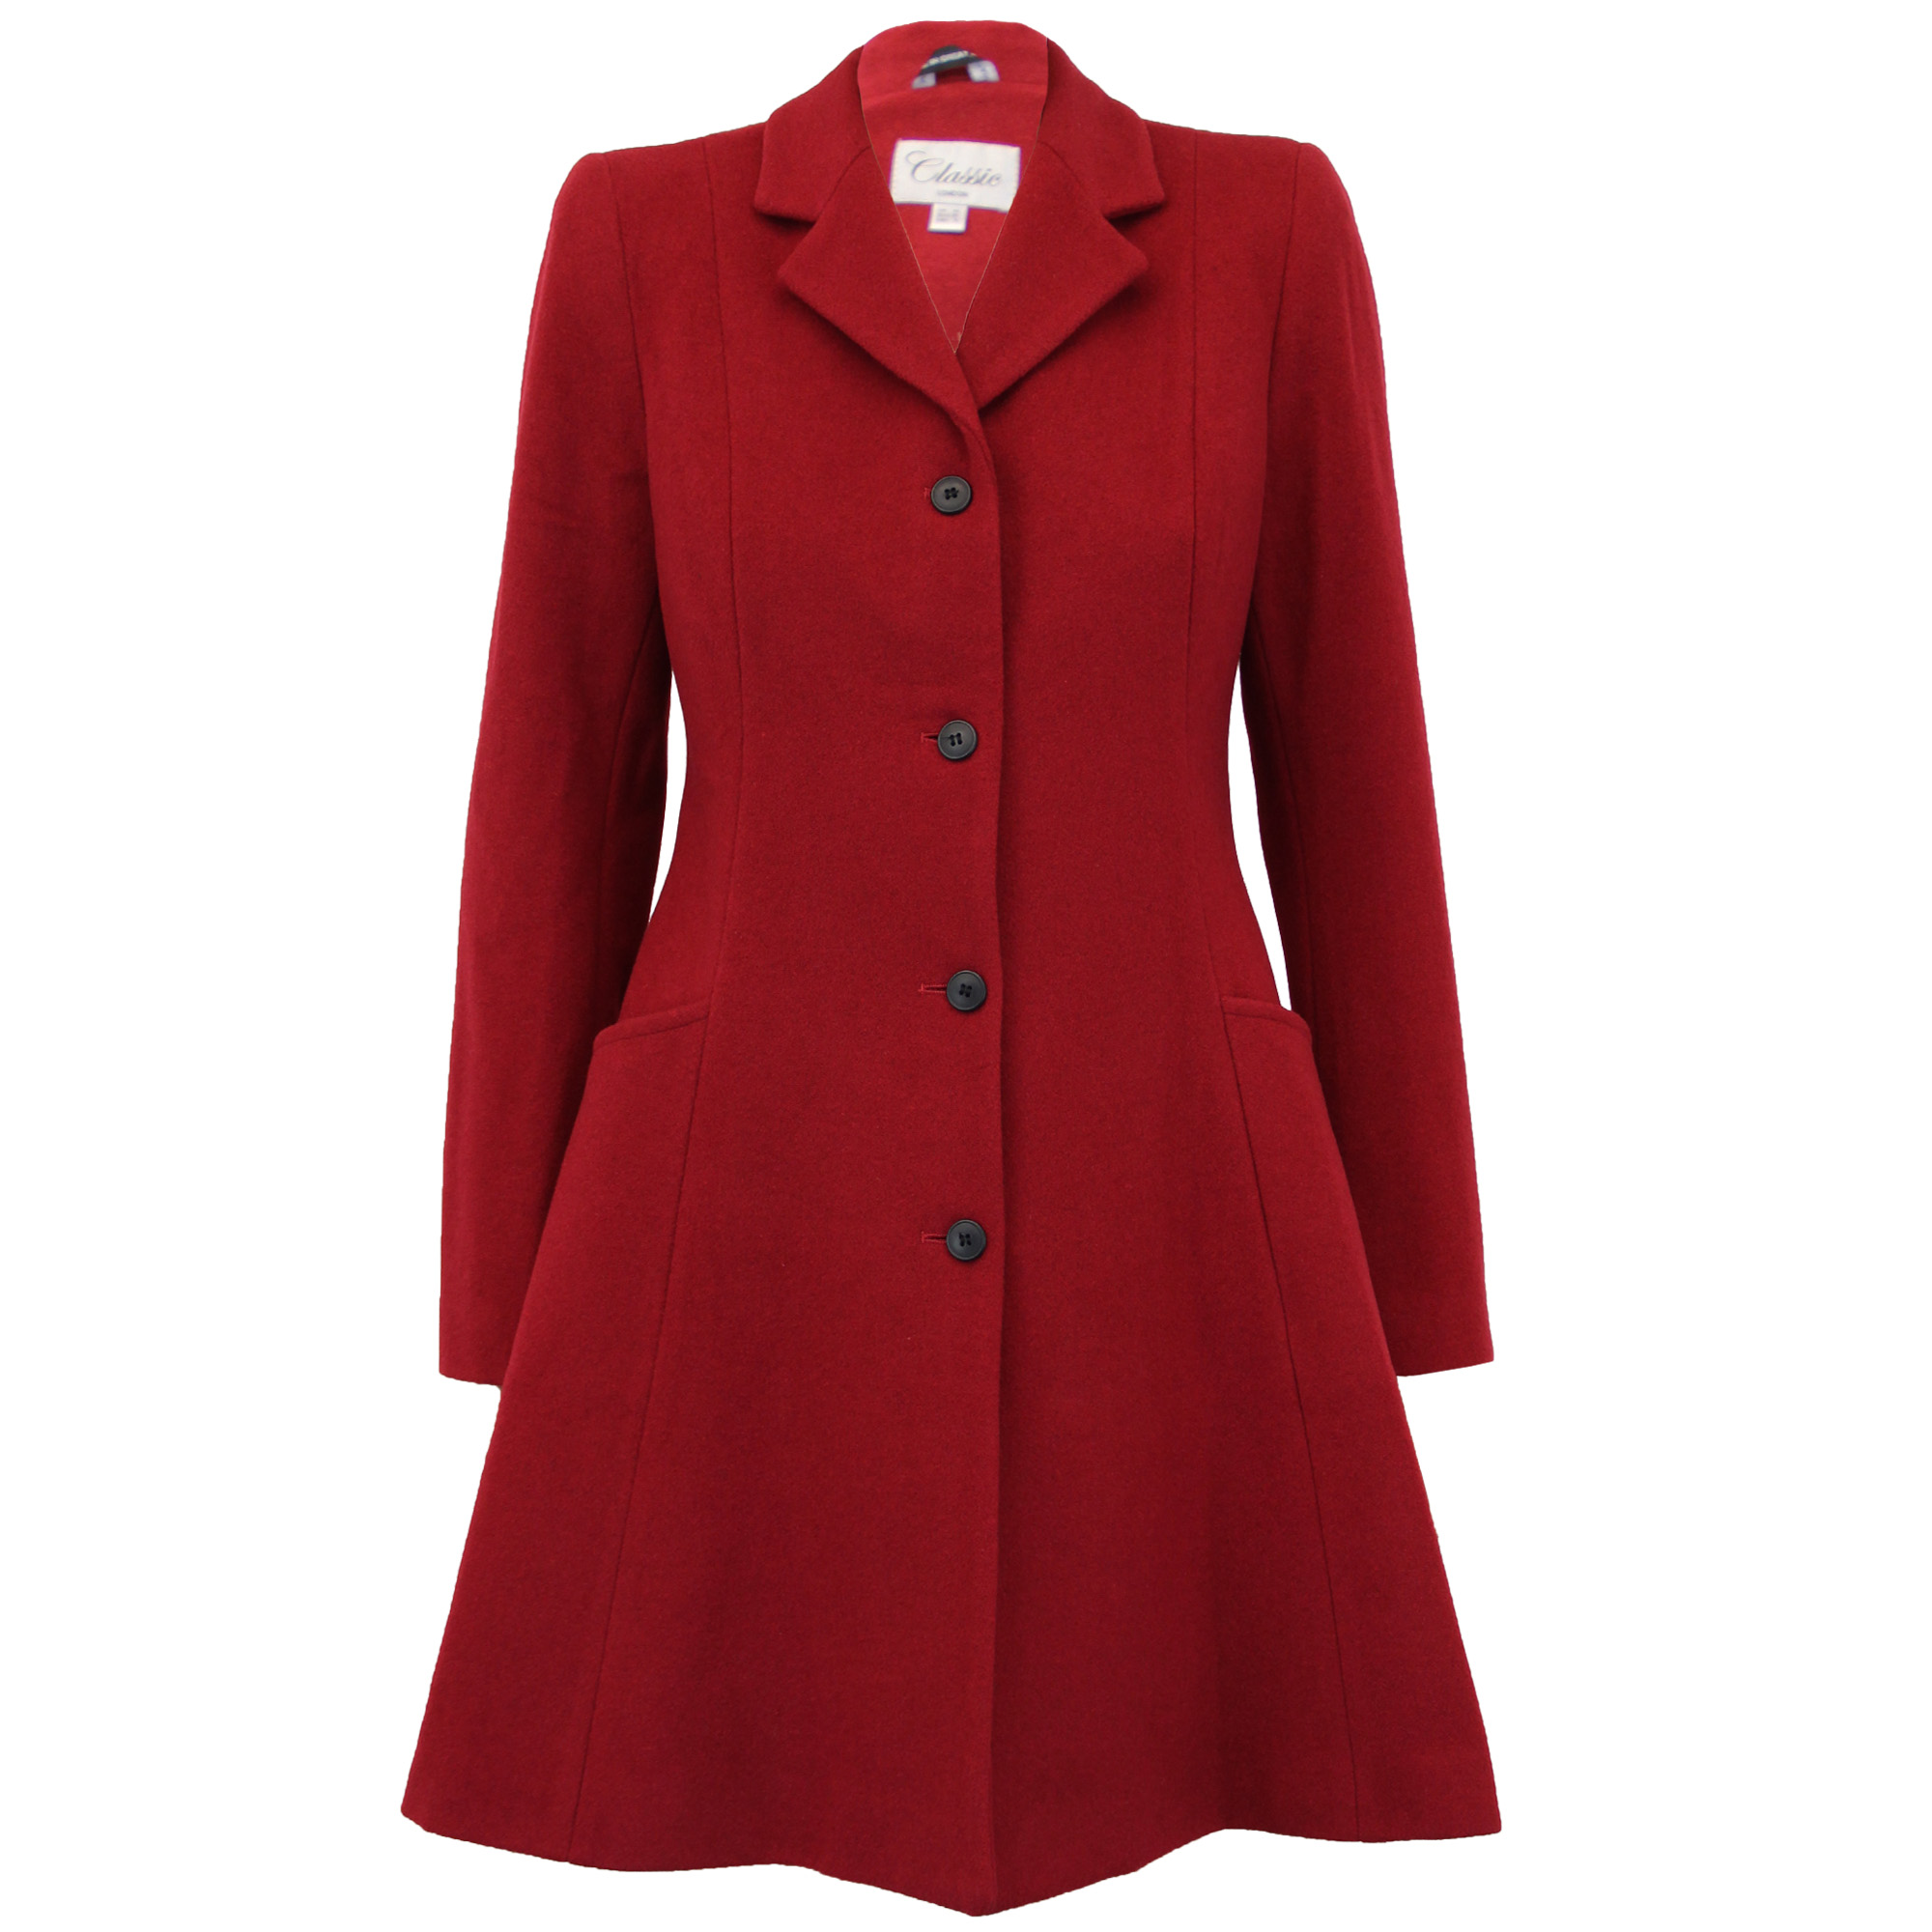 Buy the latest women's winter coats at sofltappreciate.tk Discover cheap women's coats collection with different style and high quality, find your favorite item to show your beauty in this winter.